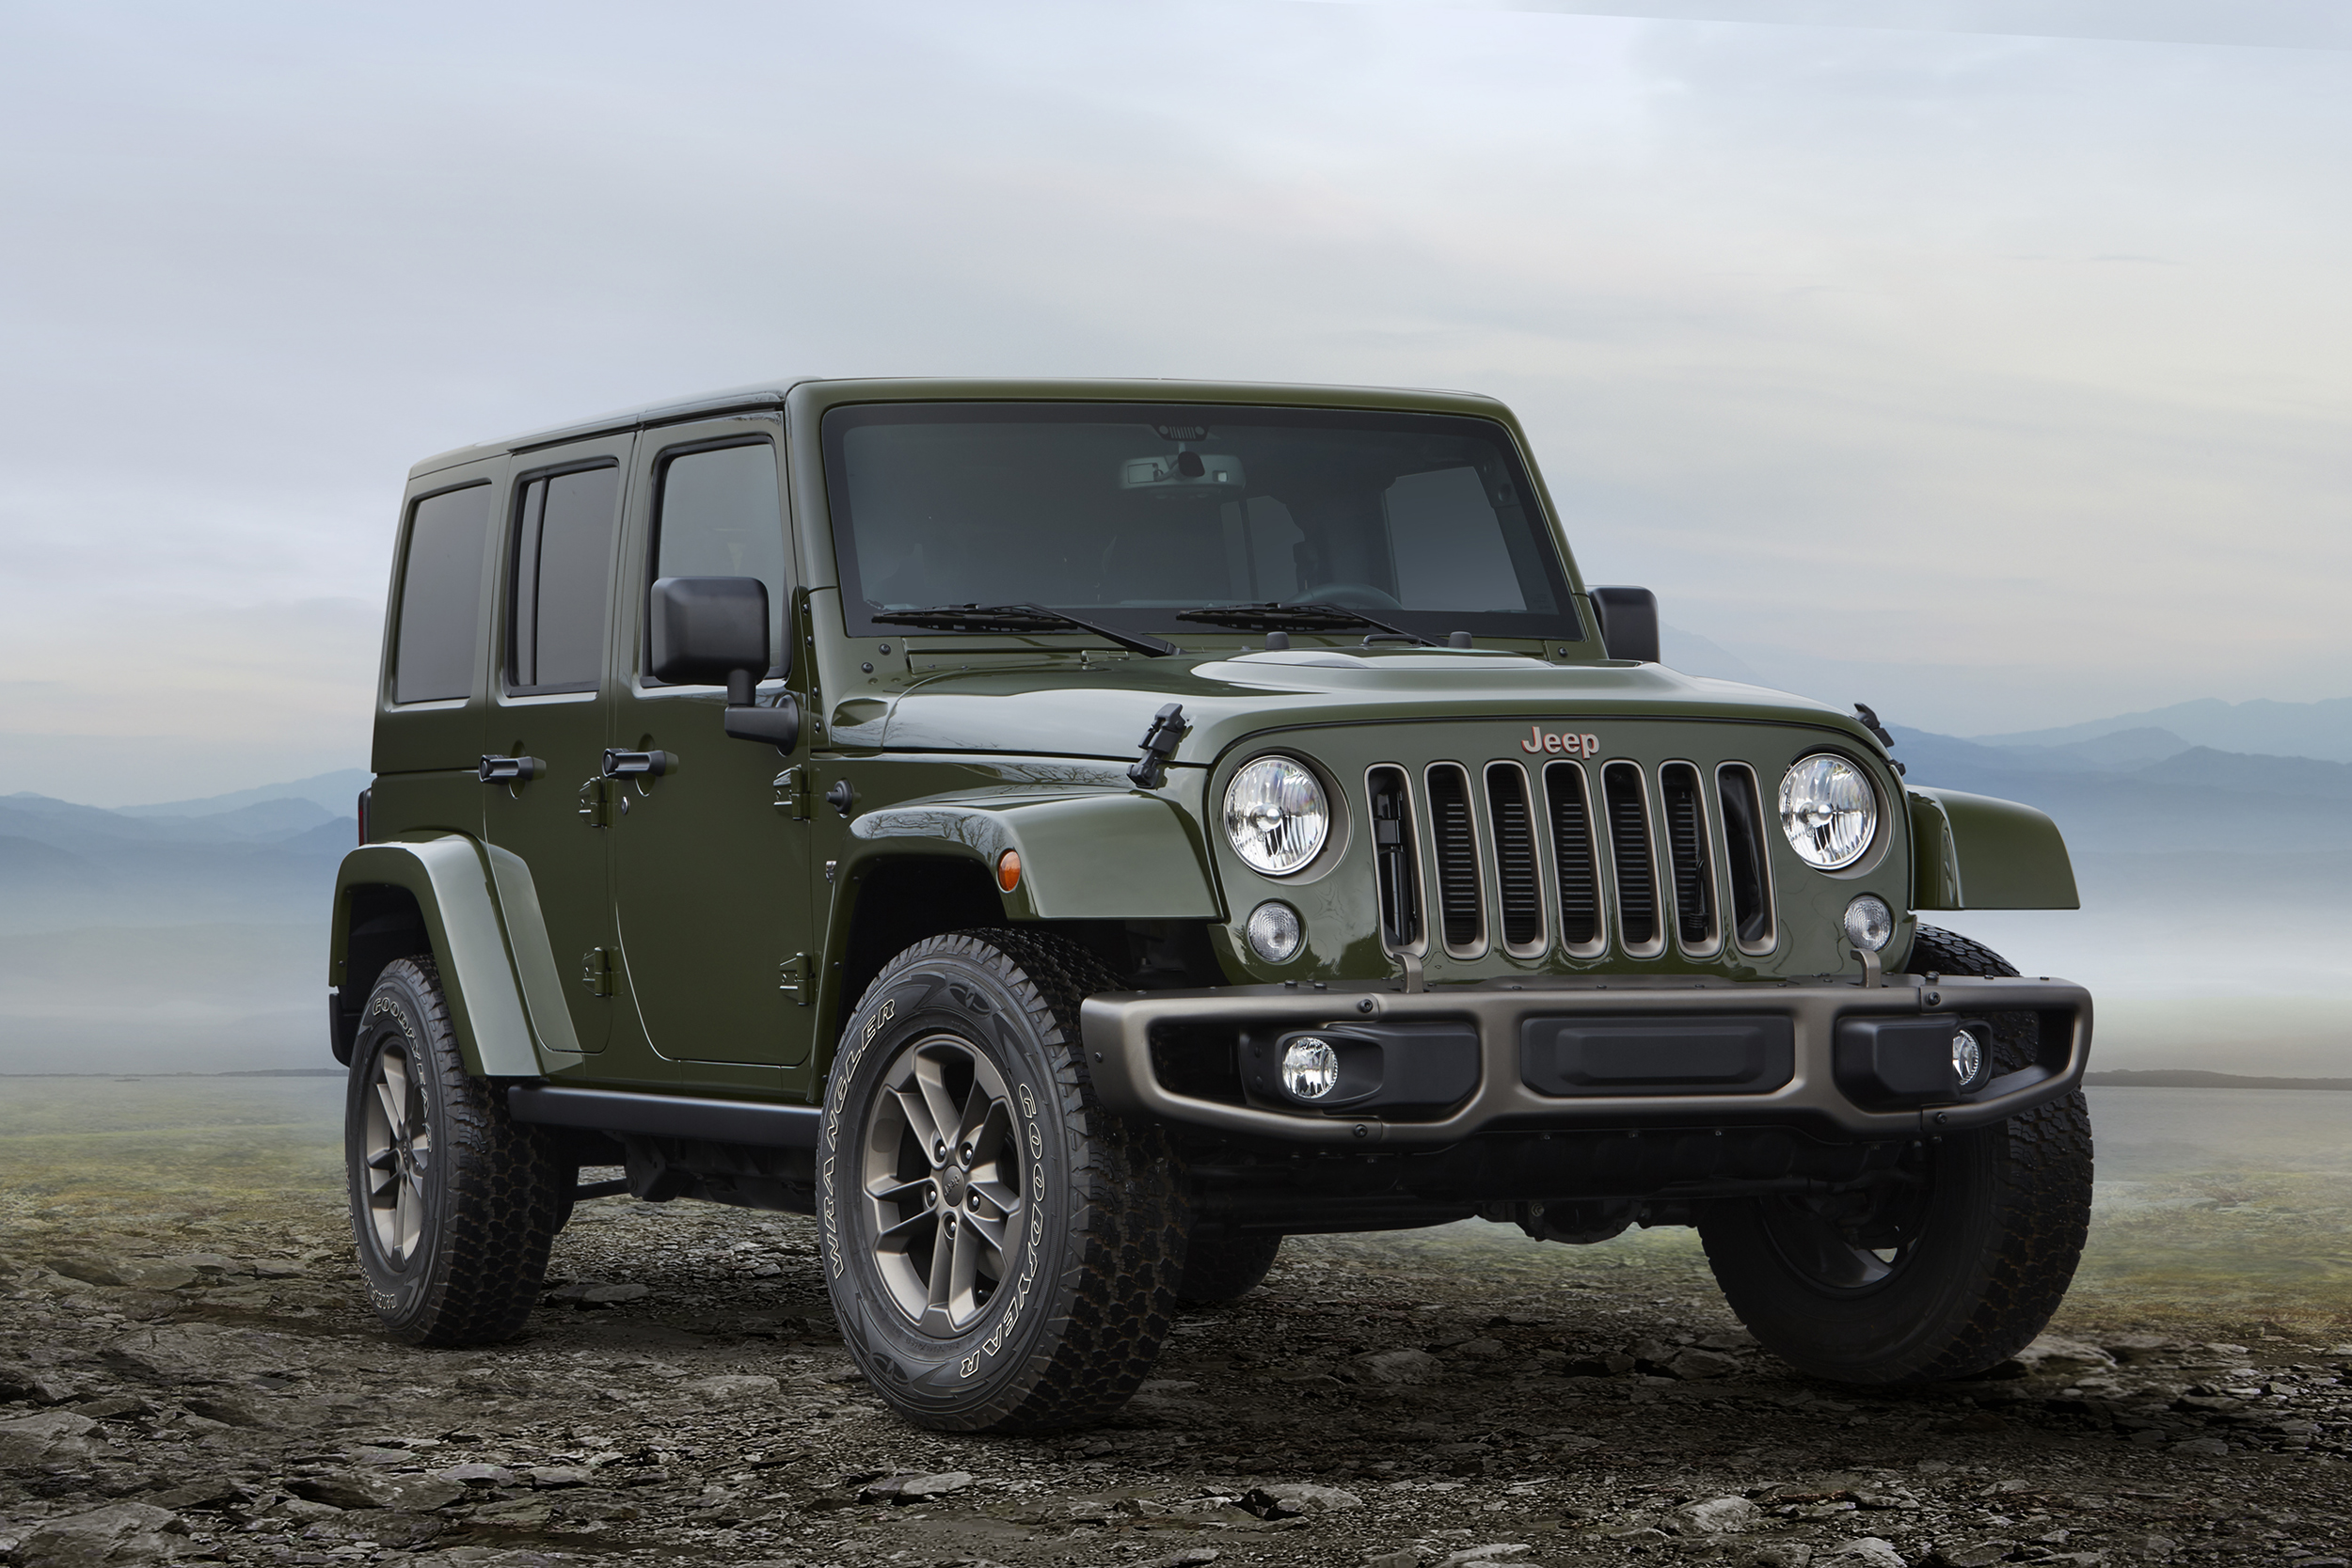 jeep sport buying guide best top header price wrangler buyacar and prices deals present hard review